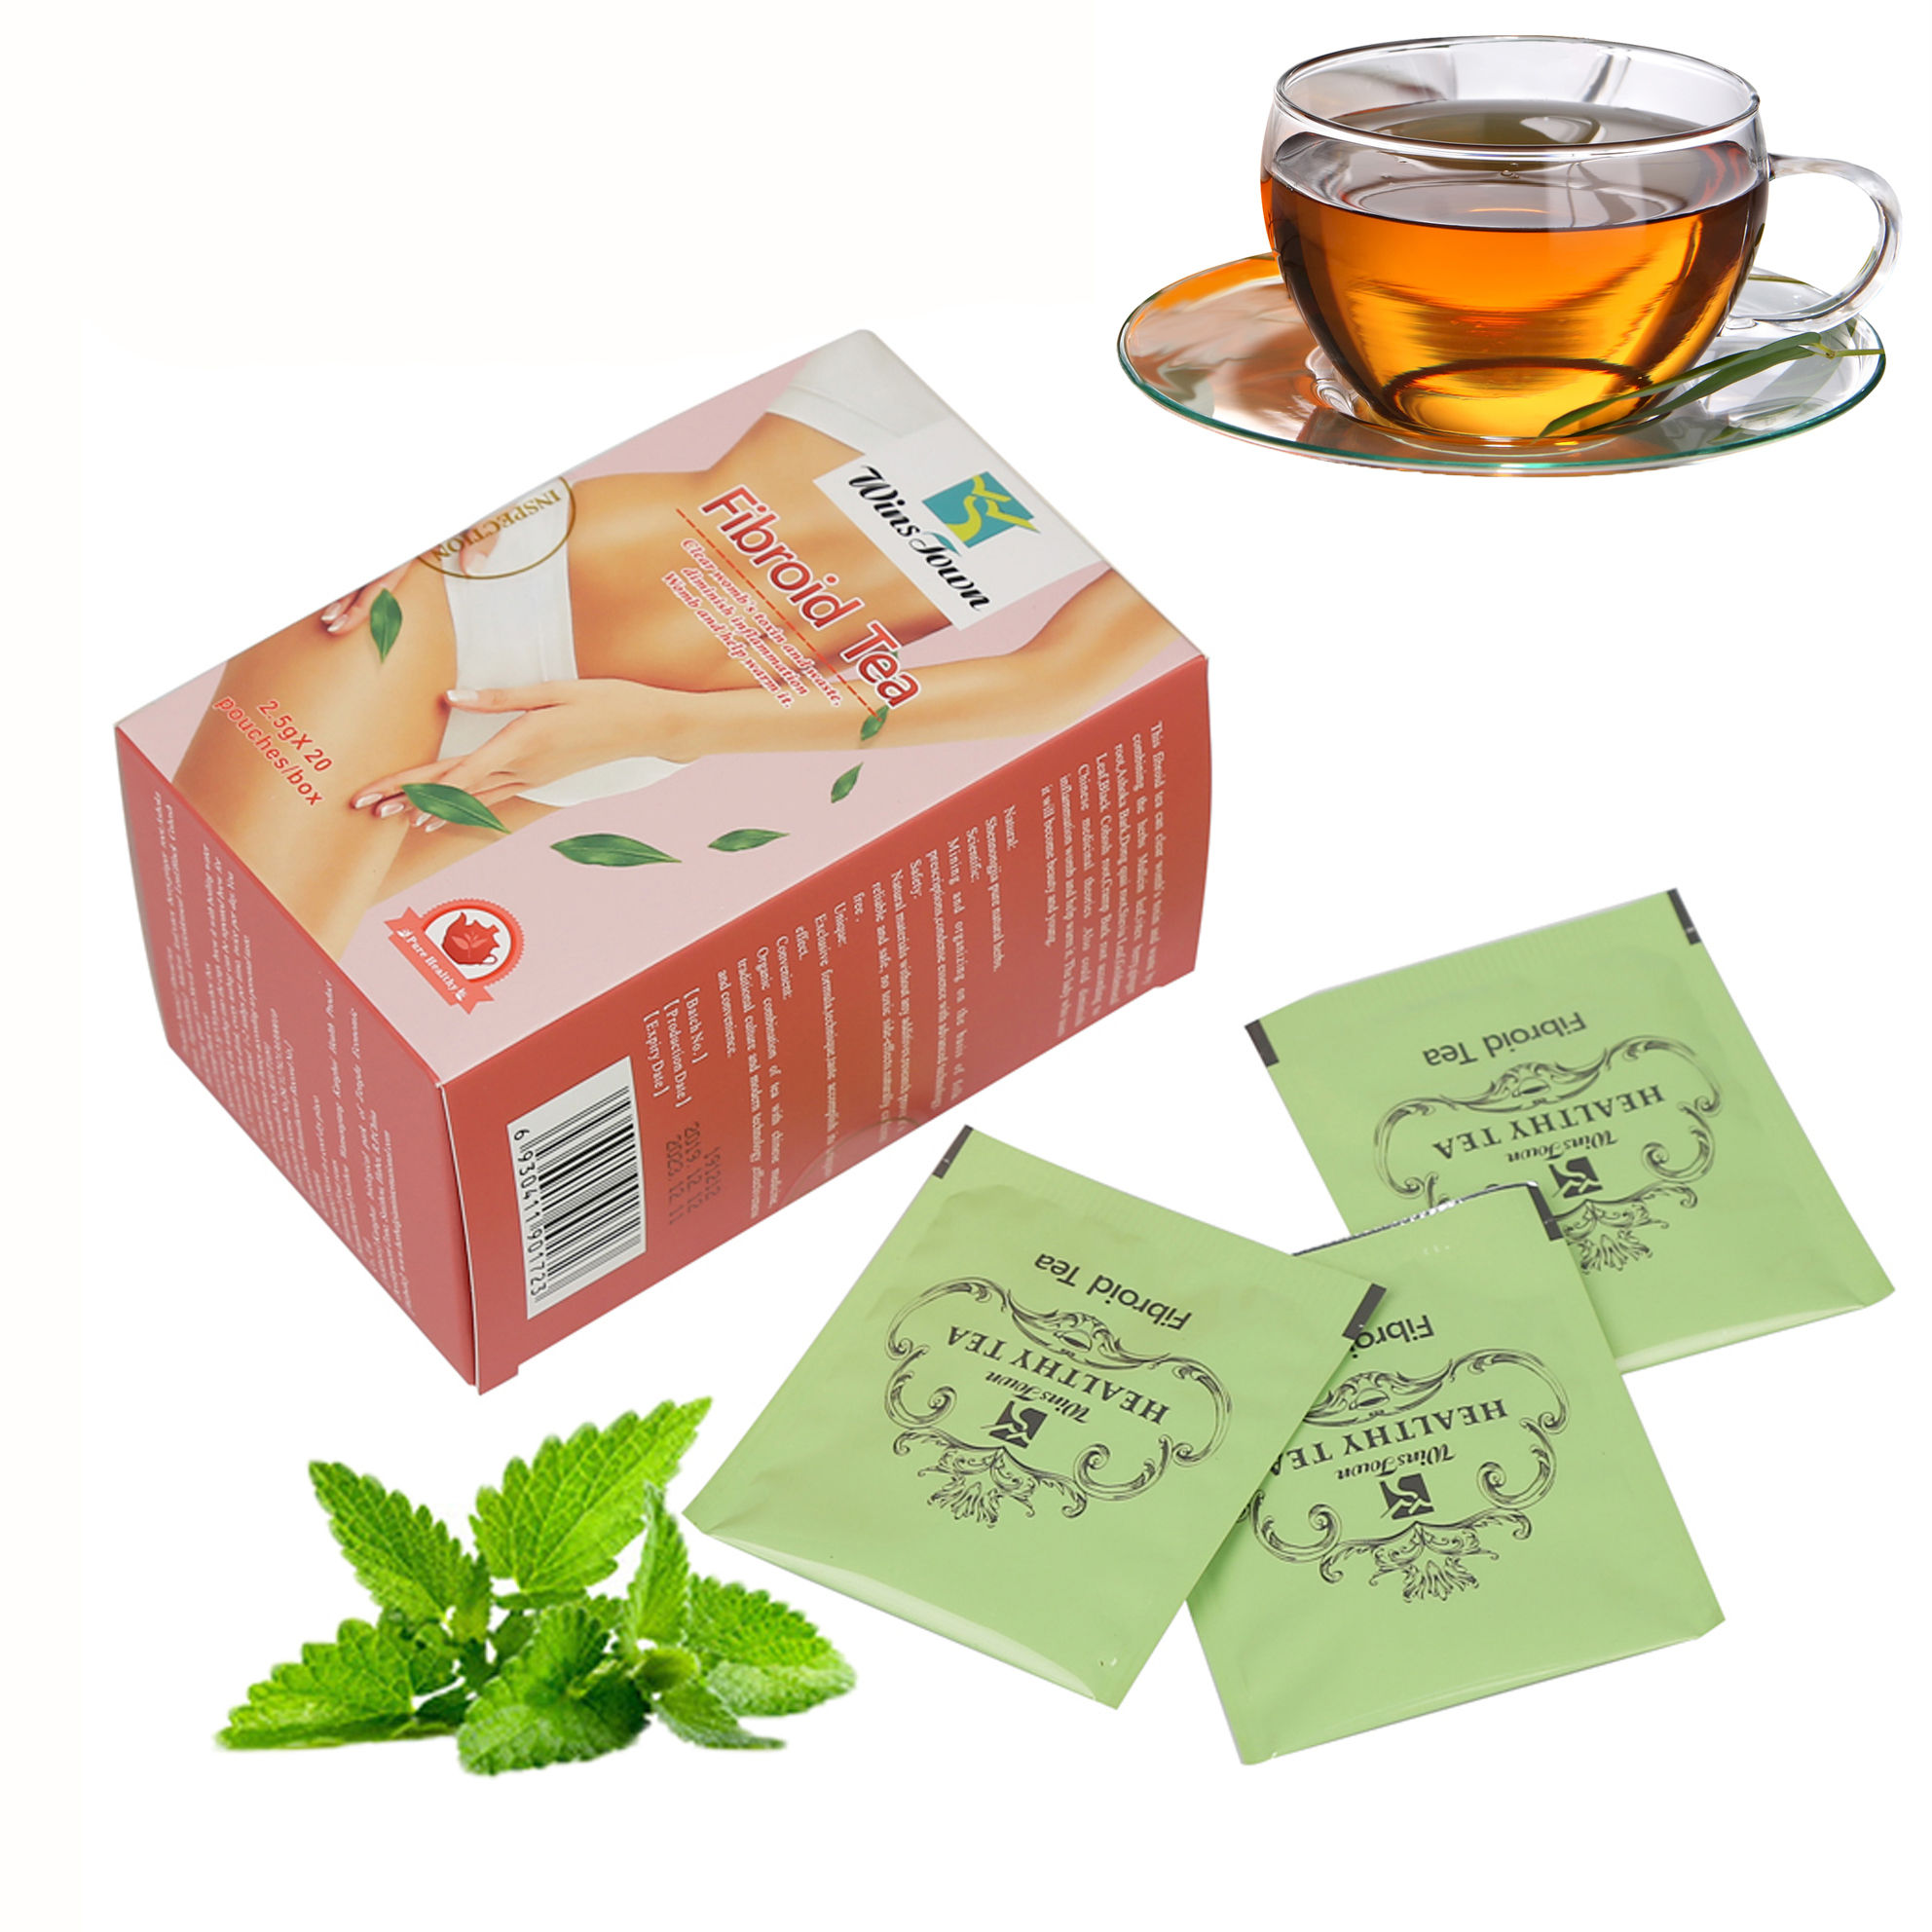 Fibroid Tea Warm Womb Detox Tea 100% Chinese <strong>Herbal</strong> Tea for Woman Healthy